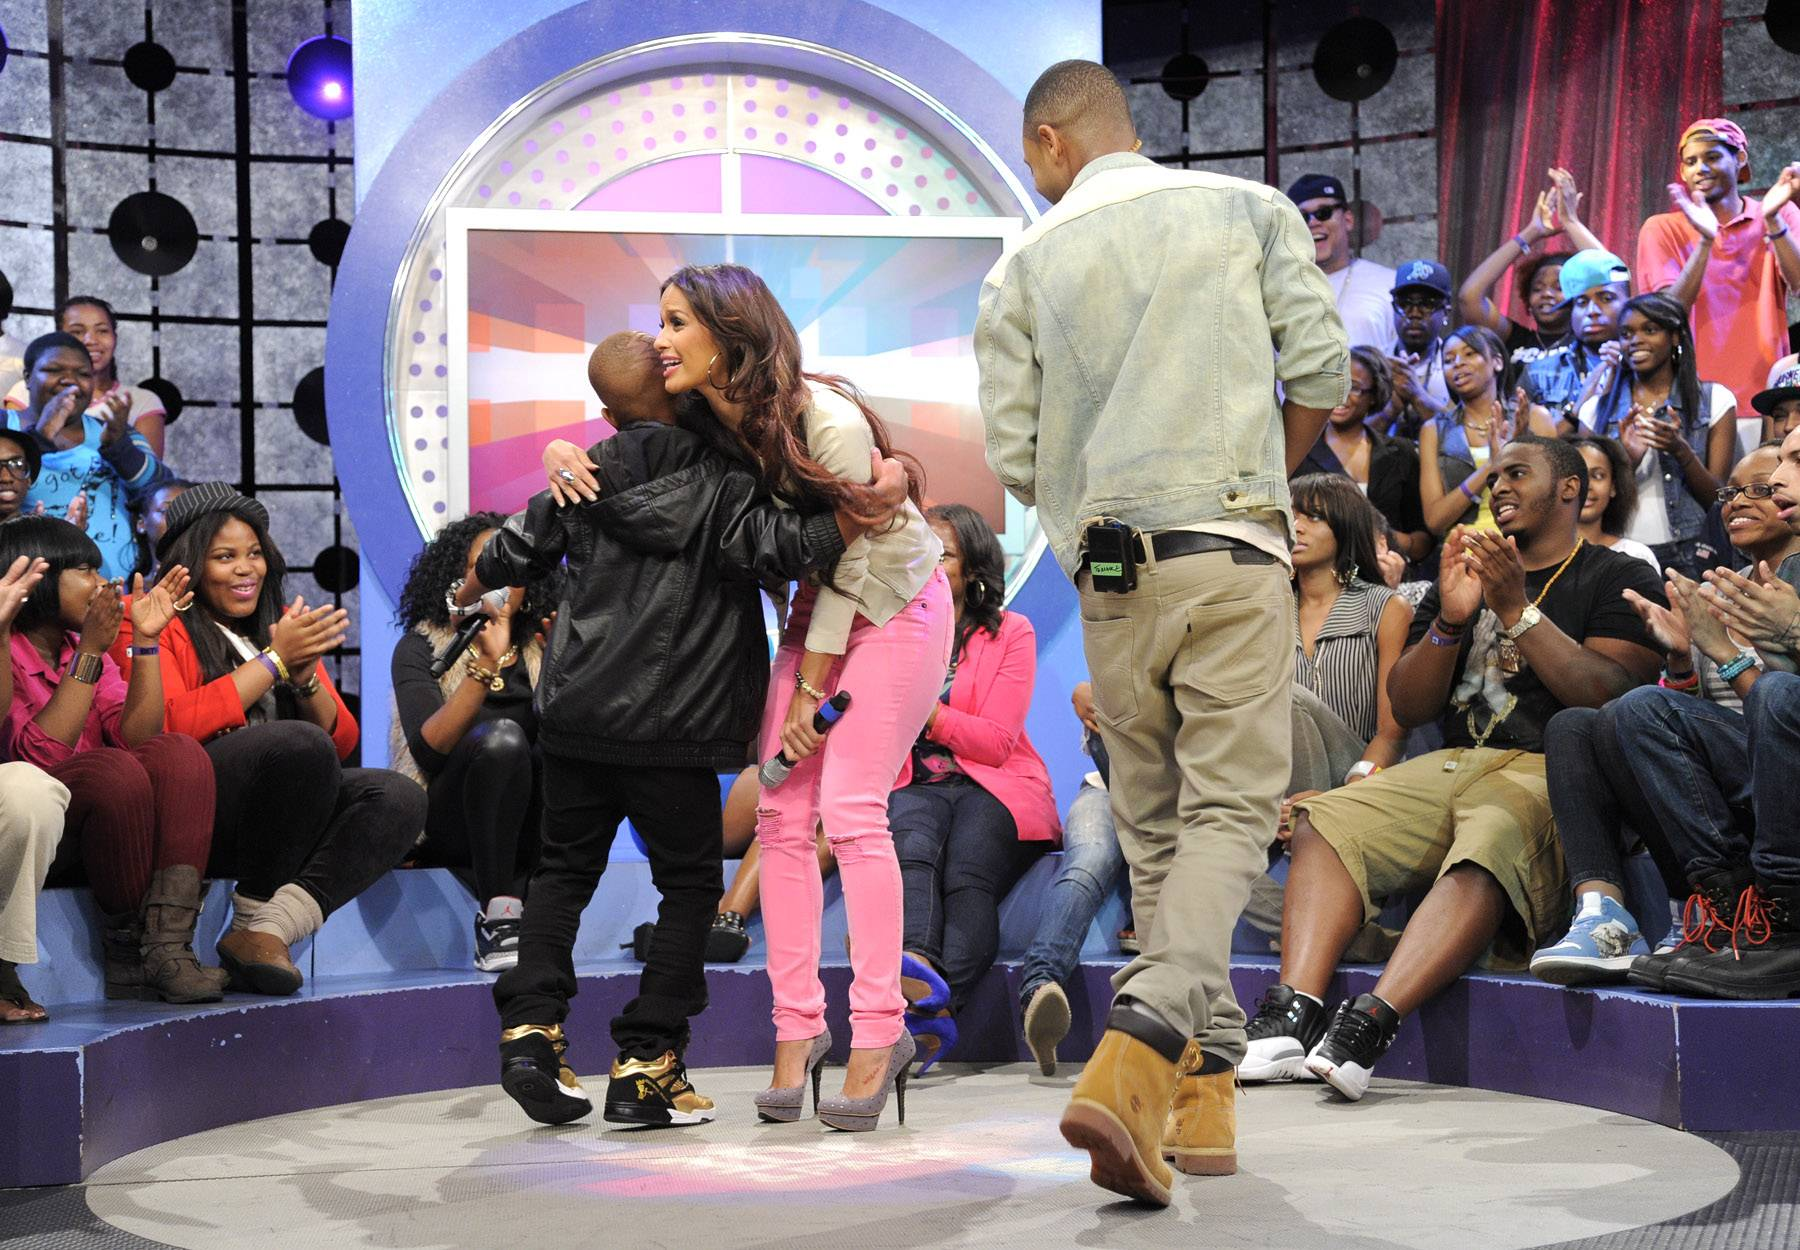 Hey rocsi... - Lil Niqo takes the stage at 106 & Park, May 16, 2012. (Photo: John Ricard / BET)